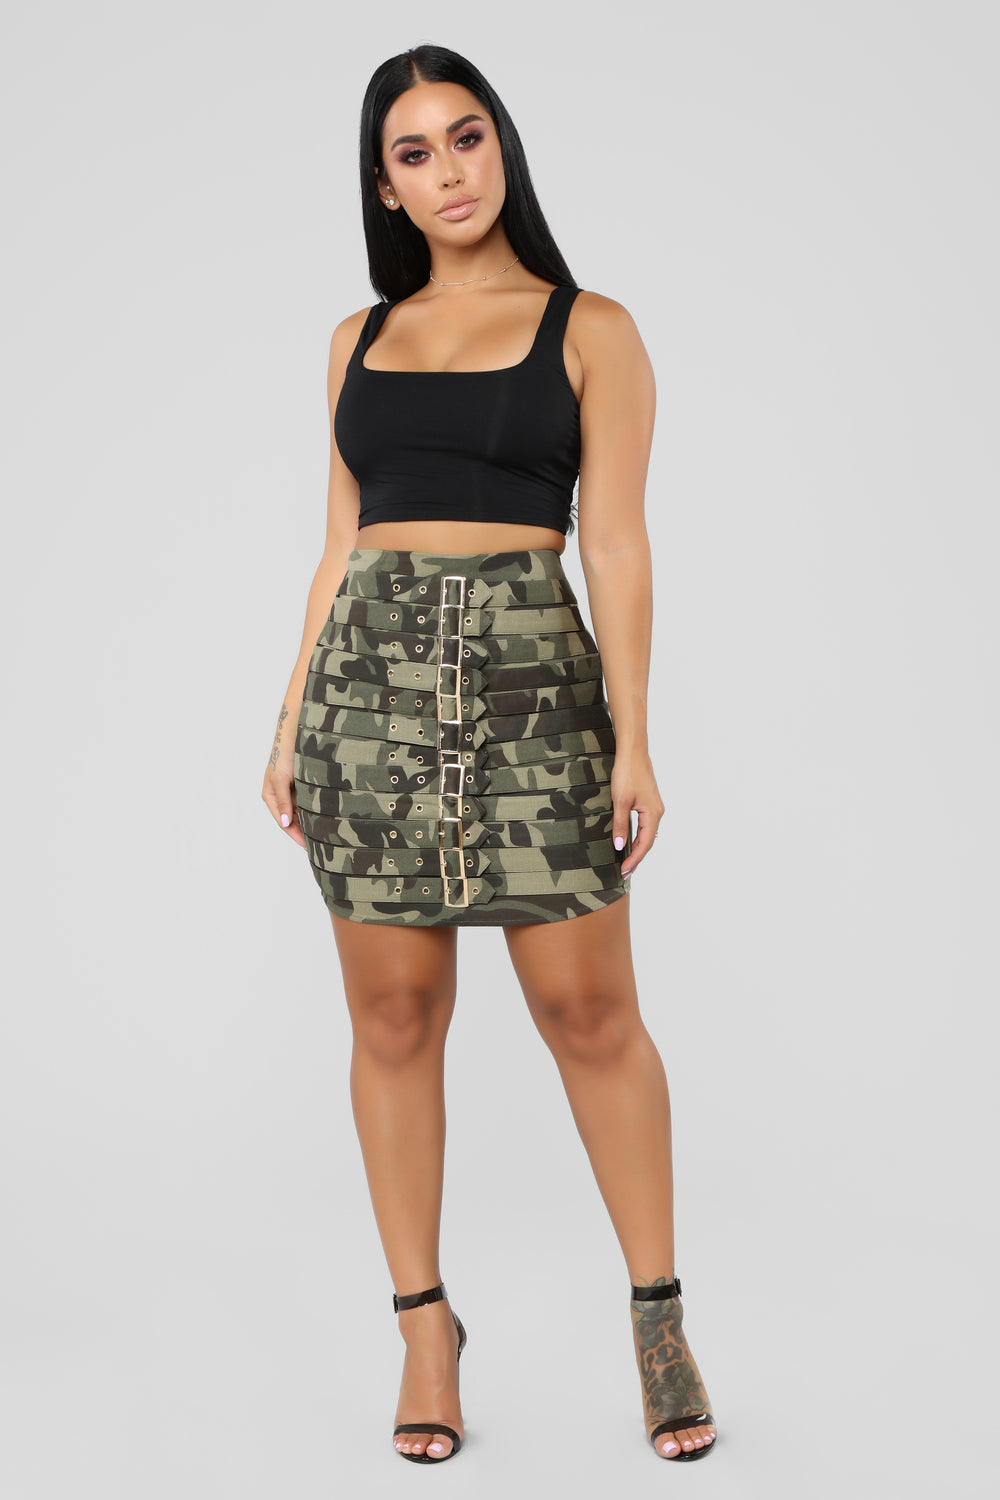 Ring The Alarm Skirt - Army